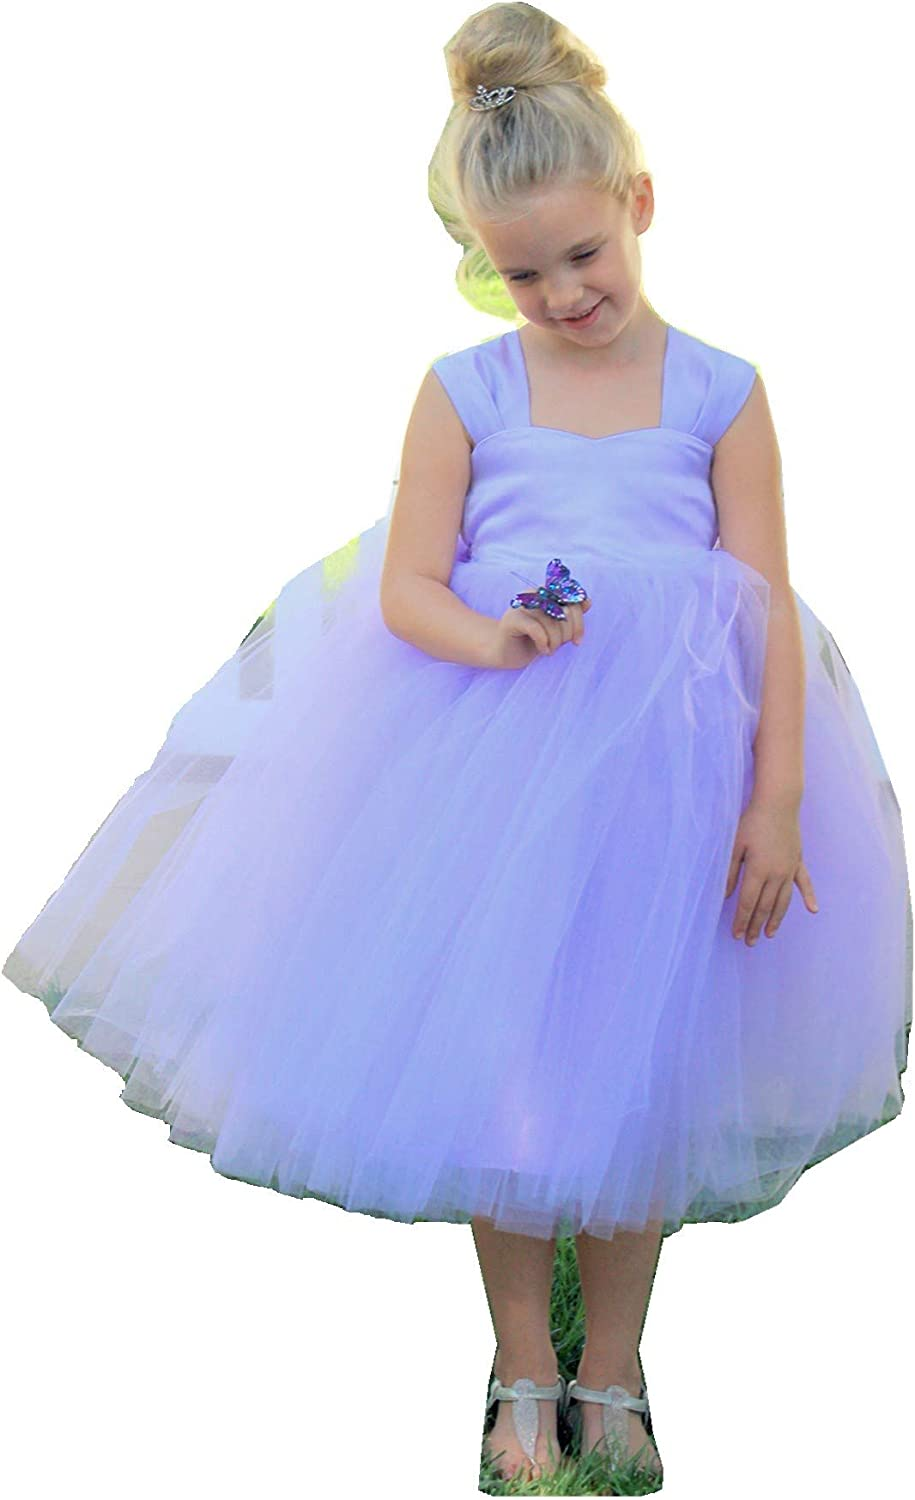 Sweetheart Max 71% OFF Neck Top Tutu Flower Special 2021new shipping free Pag Occasions Girl Dress